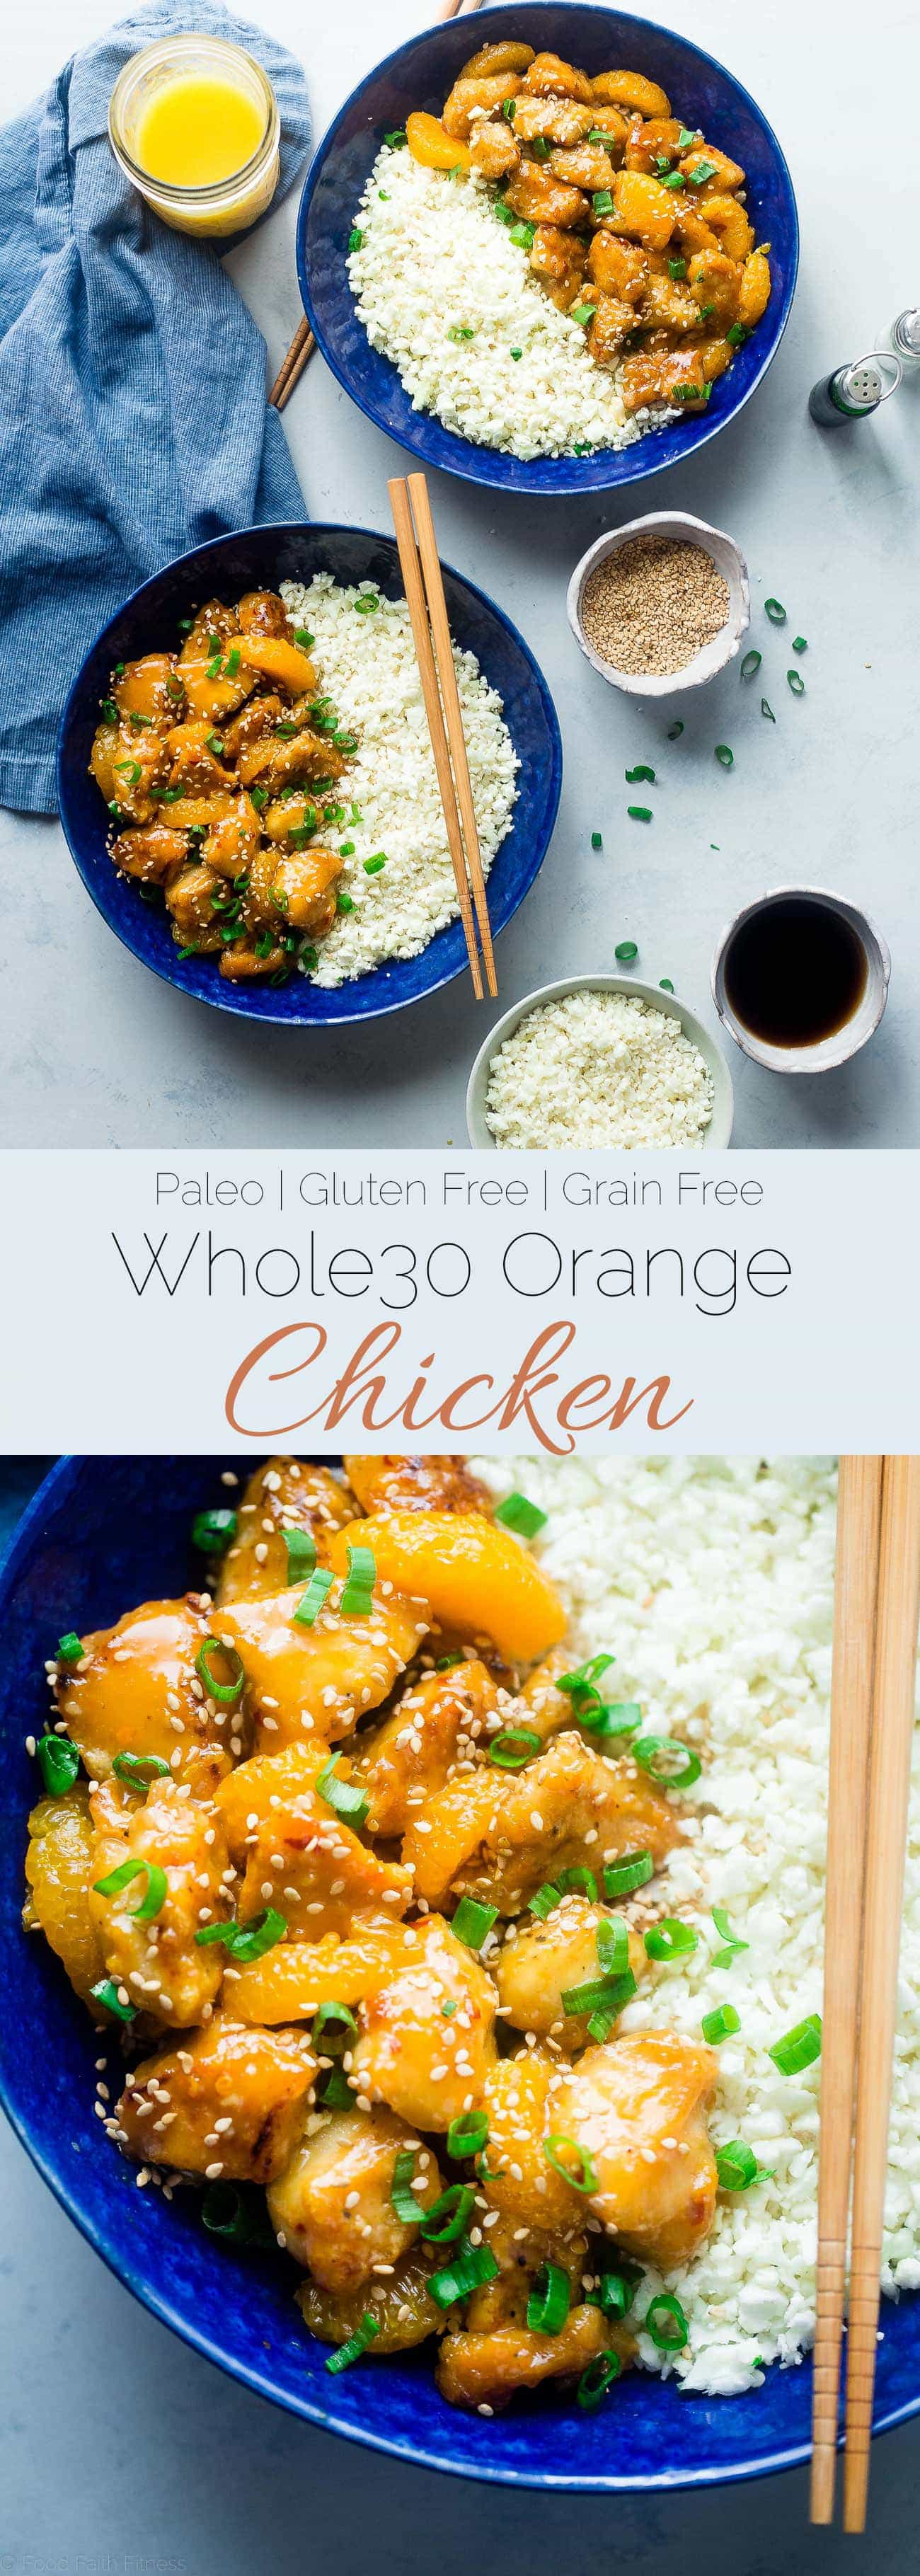 Paleo orange chicken food faith fitness whole30 orange chicken this 30 minute paleo orange chicken is so much better and forumfinder Gallery